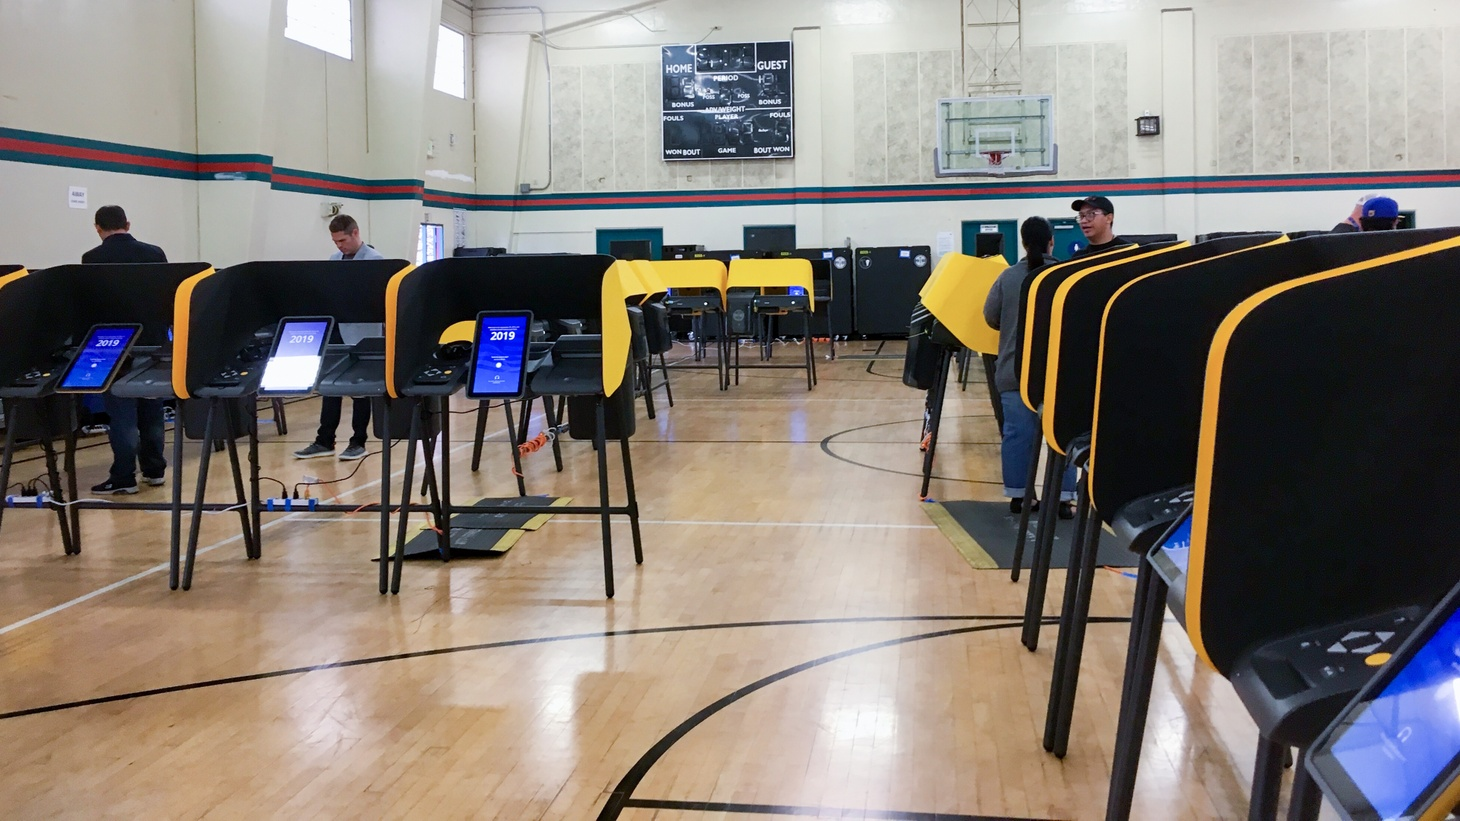 A voting center at Salazar Park in East Los Angeles during the LA County mock election on September 28, 2019.